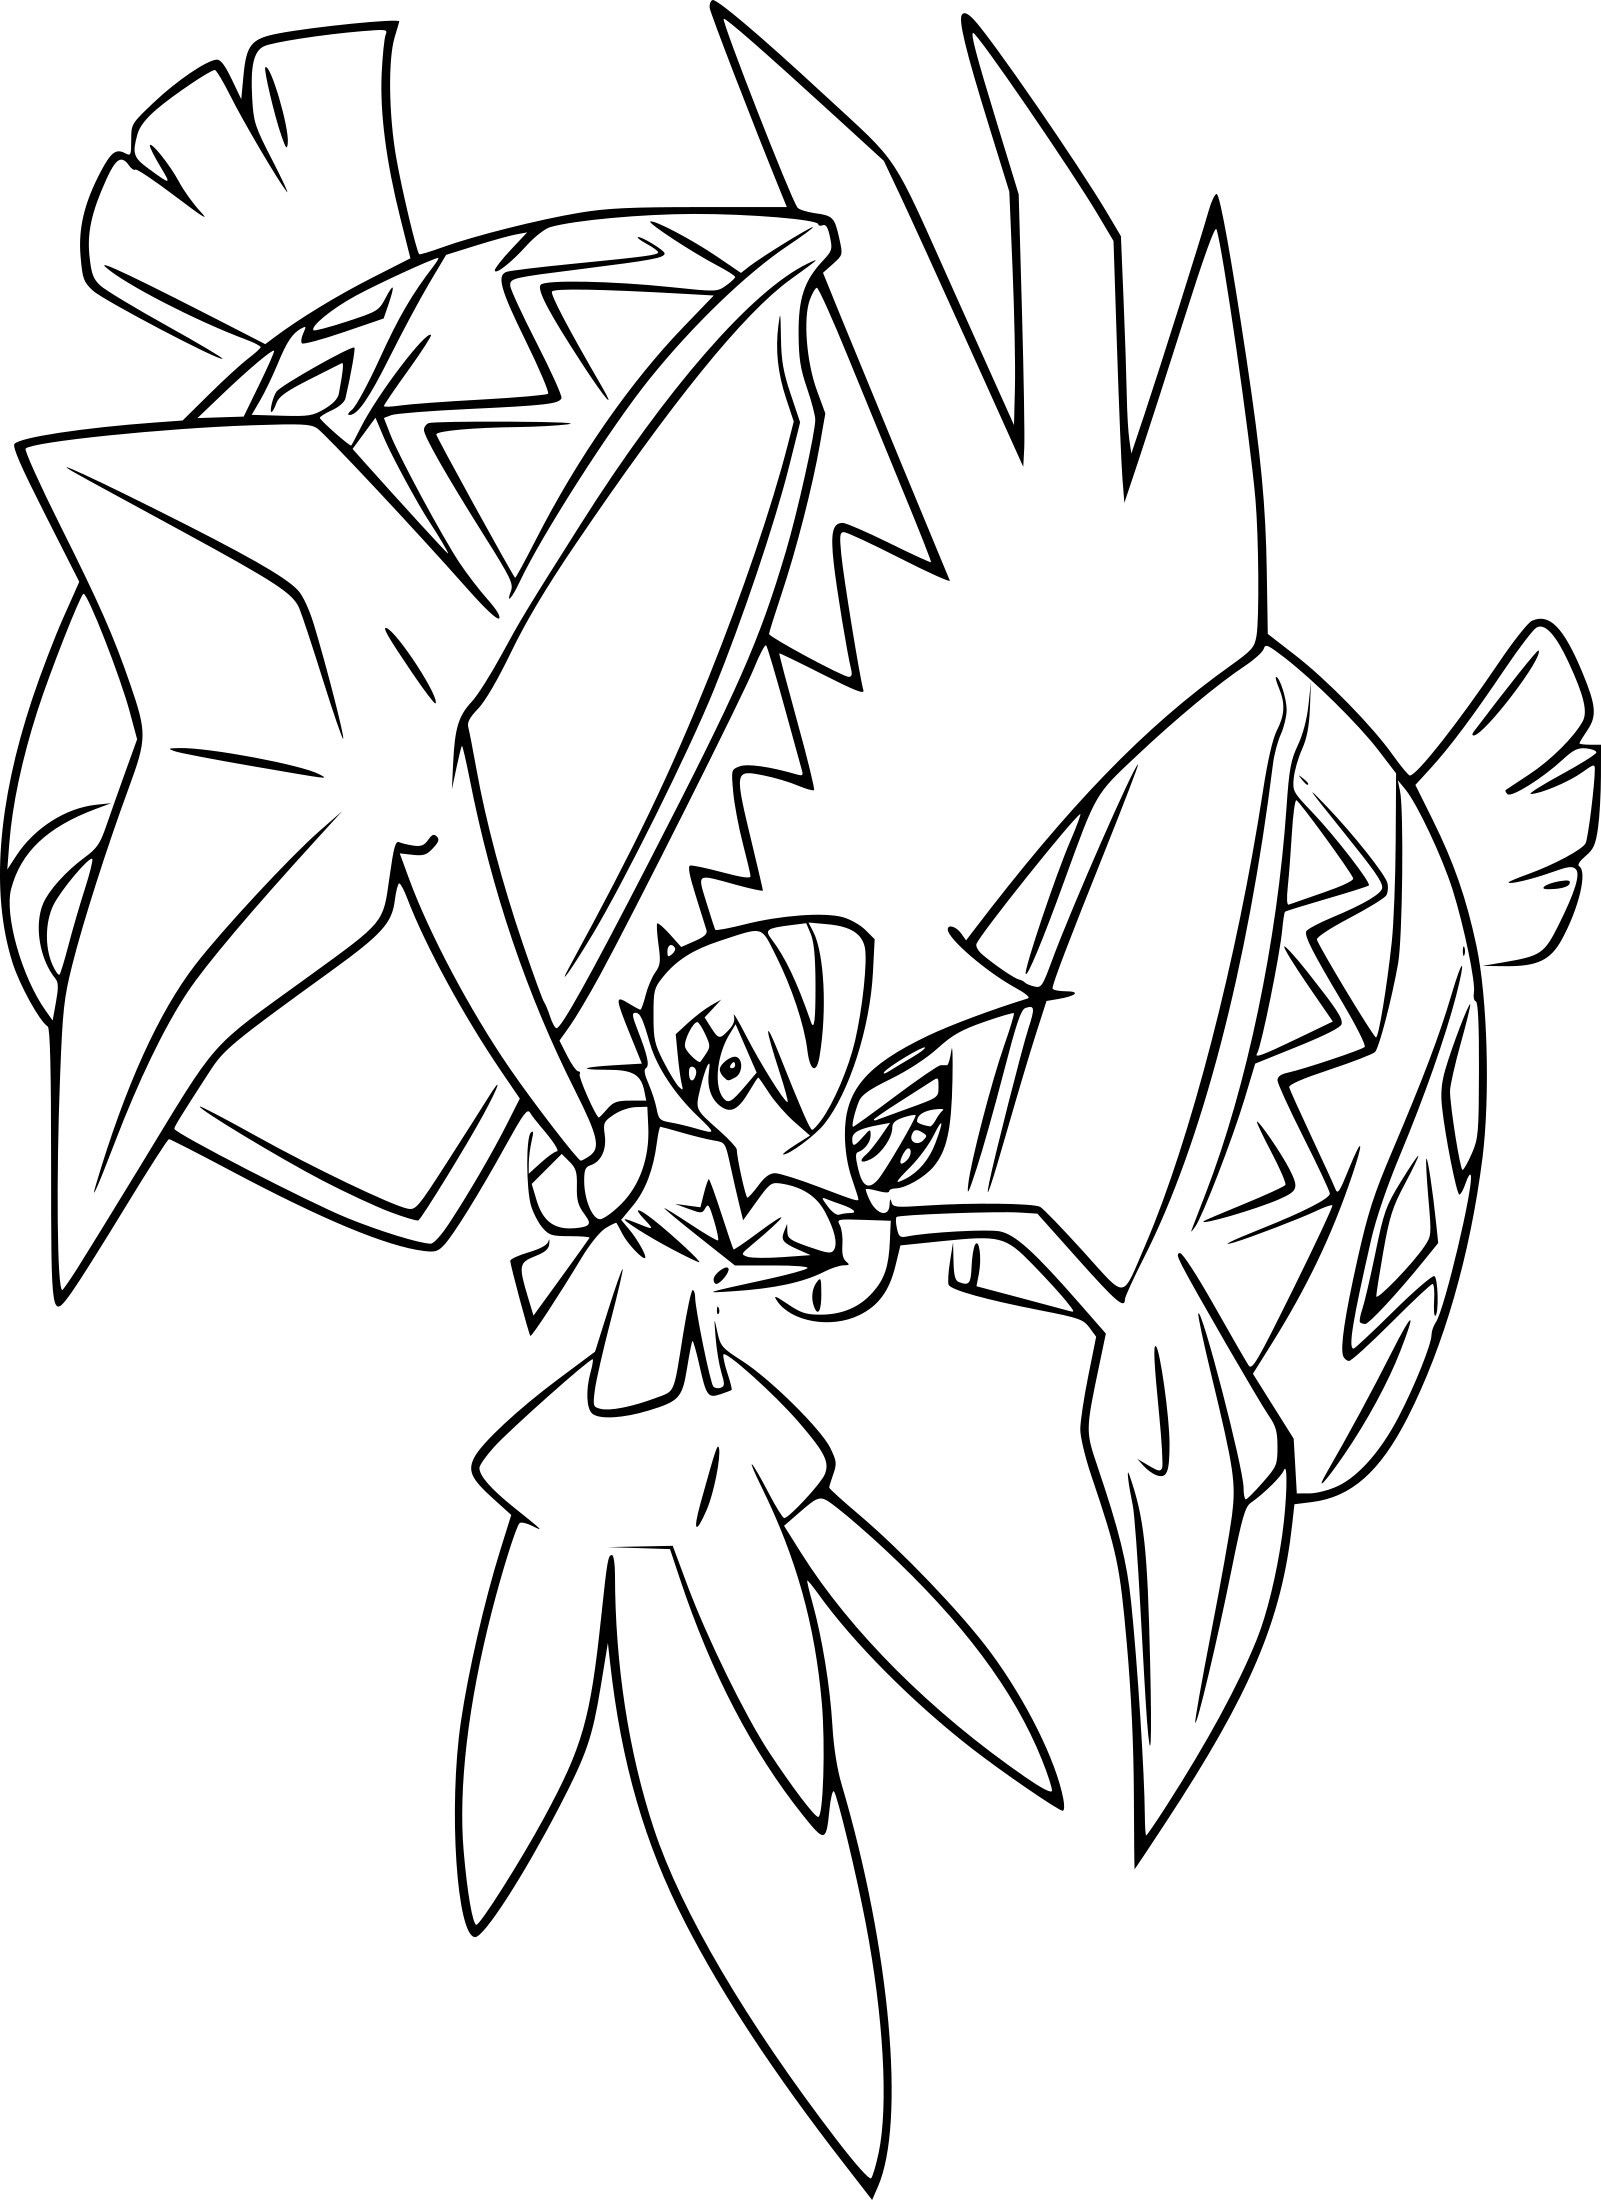 Pokemon Tapu Koko Coloring Pages Pokemon Para Colorir Desenhos